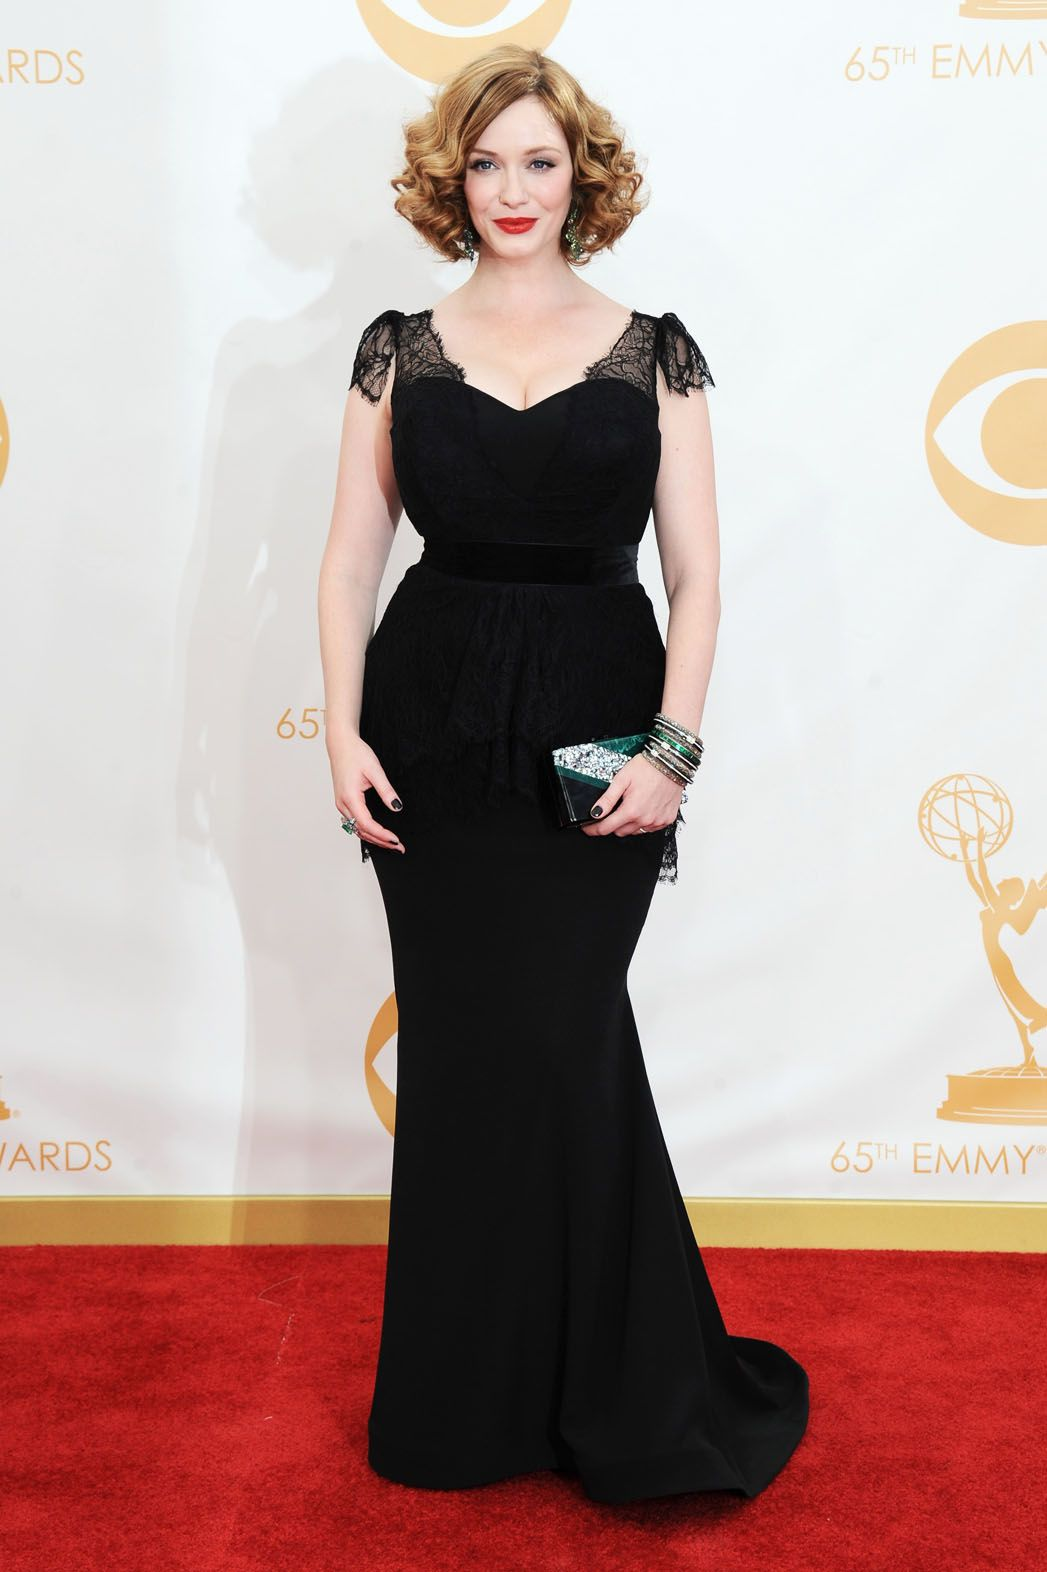 a633098116e5a Christina Hendricks in Christian Soriano. The best she has ever looked on  the red carpet!